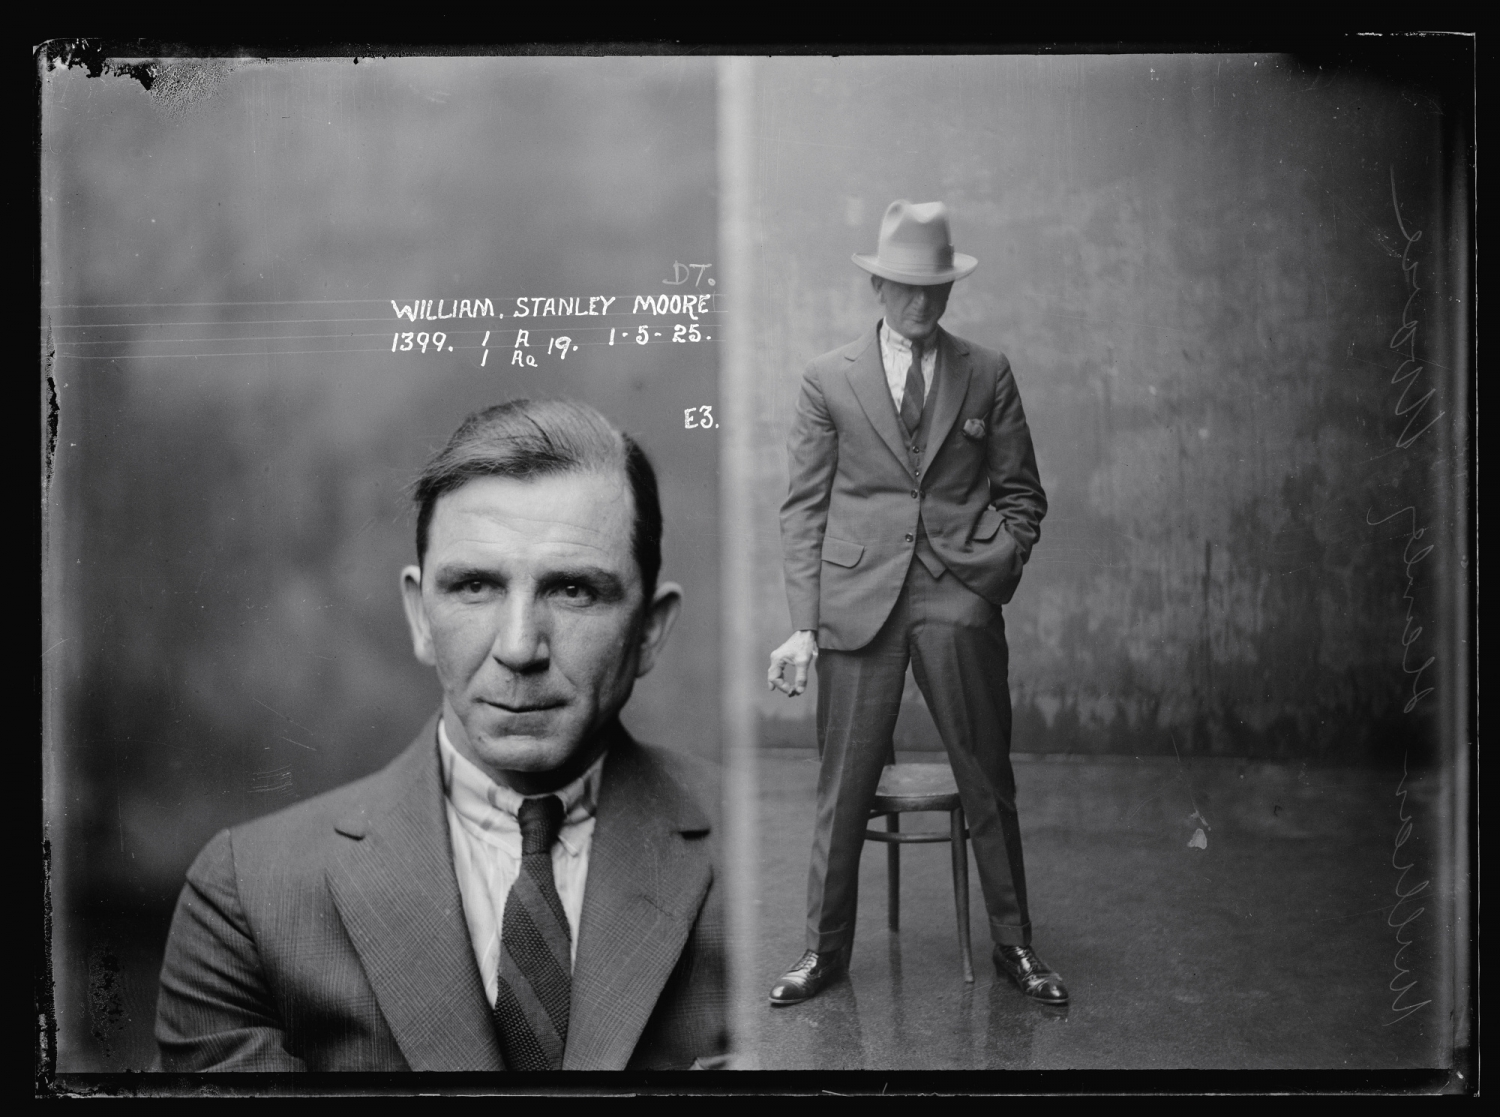 Dual black and white mugshot, man seated, and man standing with hat on.